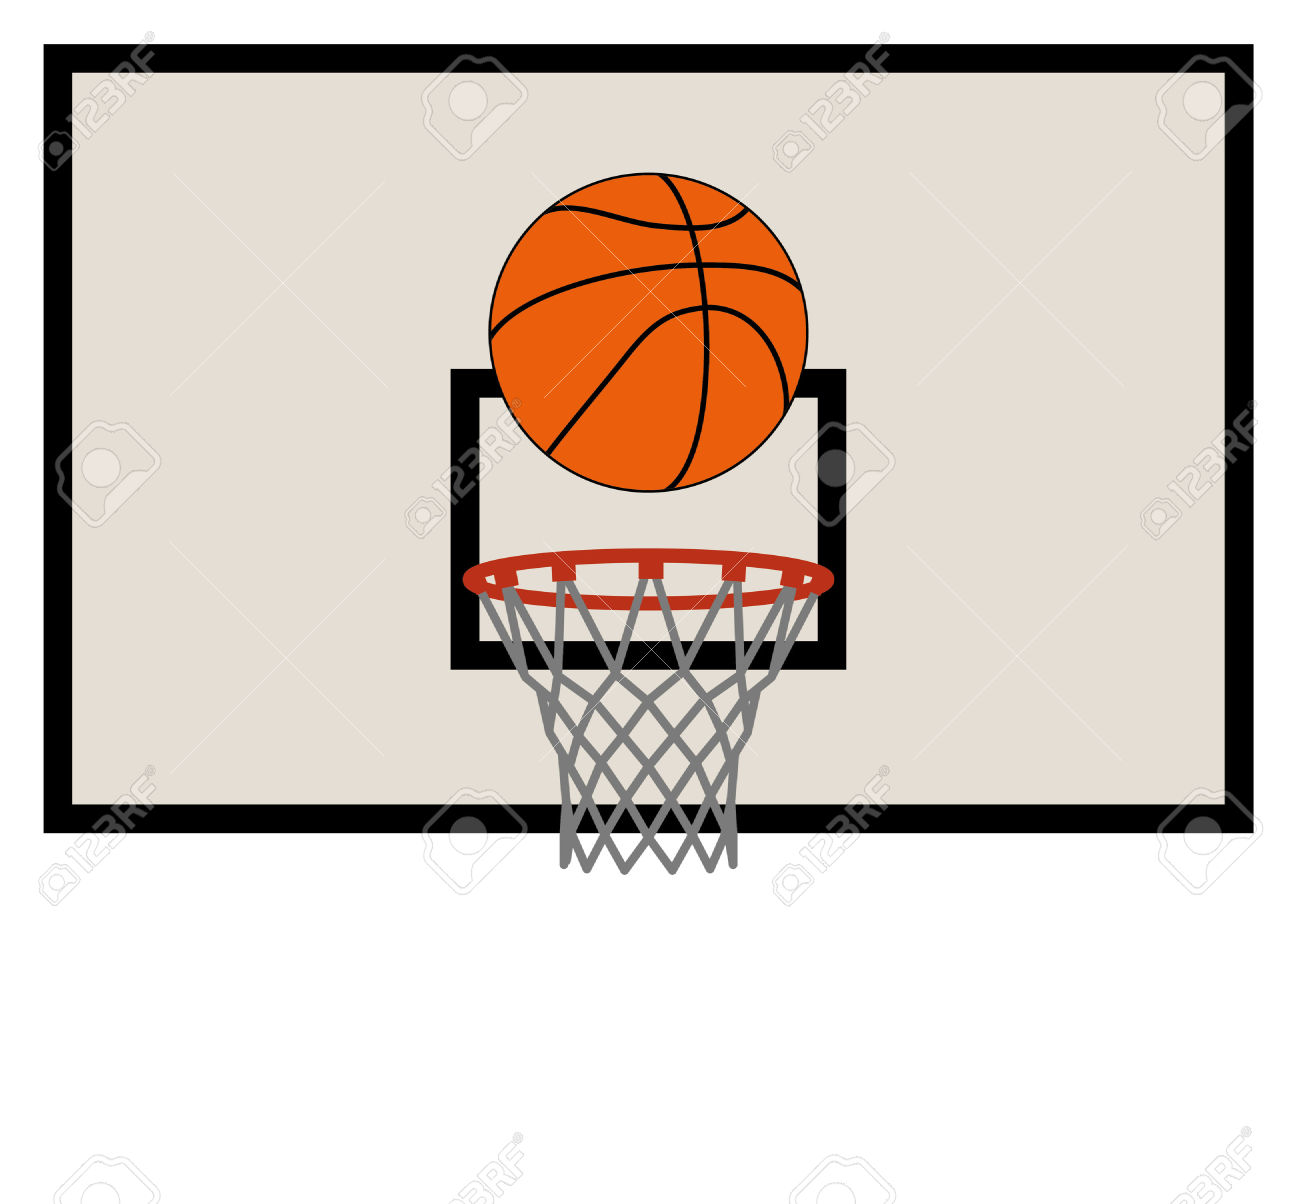 7,109 Basketball Backboard Stock Illustrations, Cliparts And.